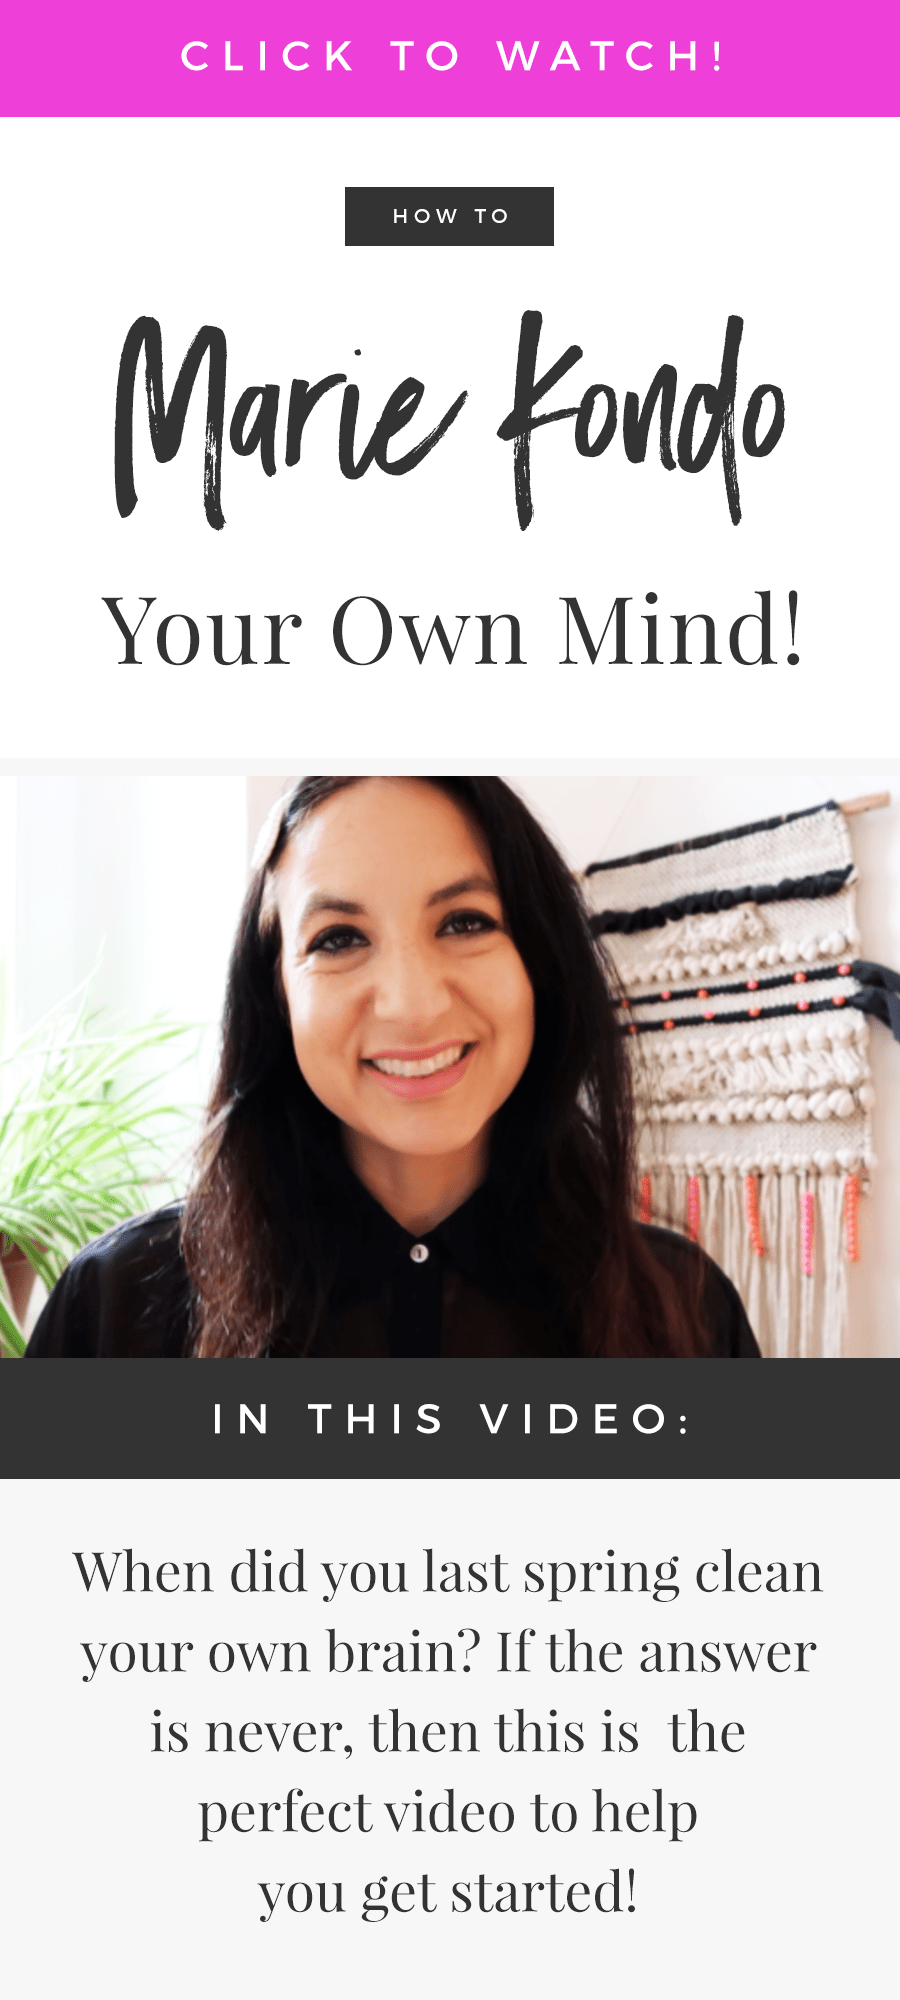 How To Marie Kondo Your Own Mind!